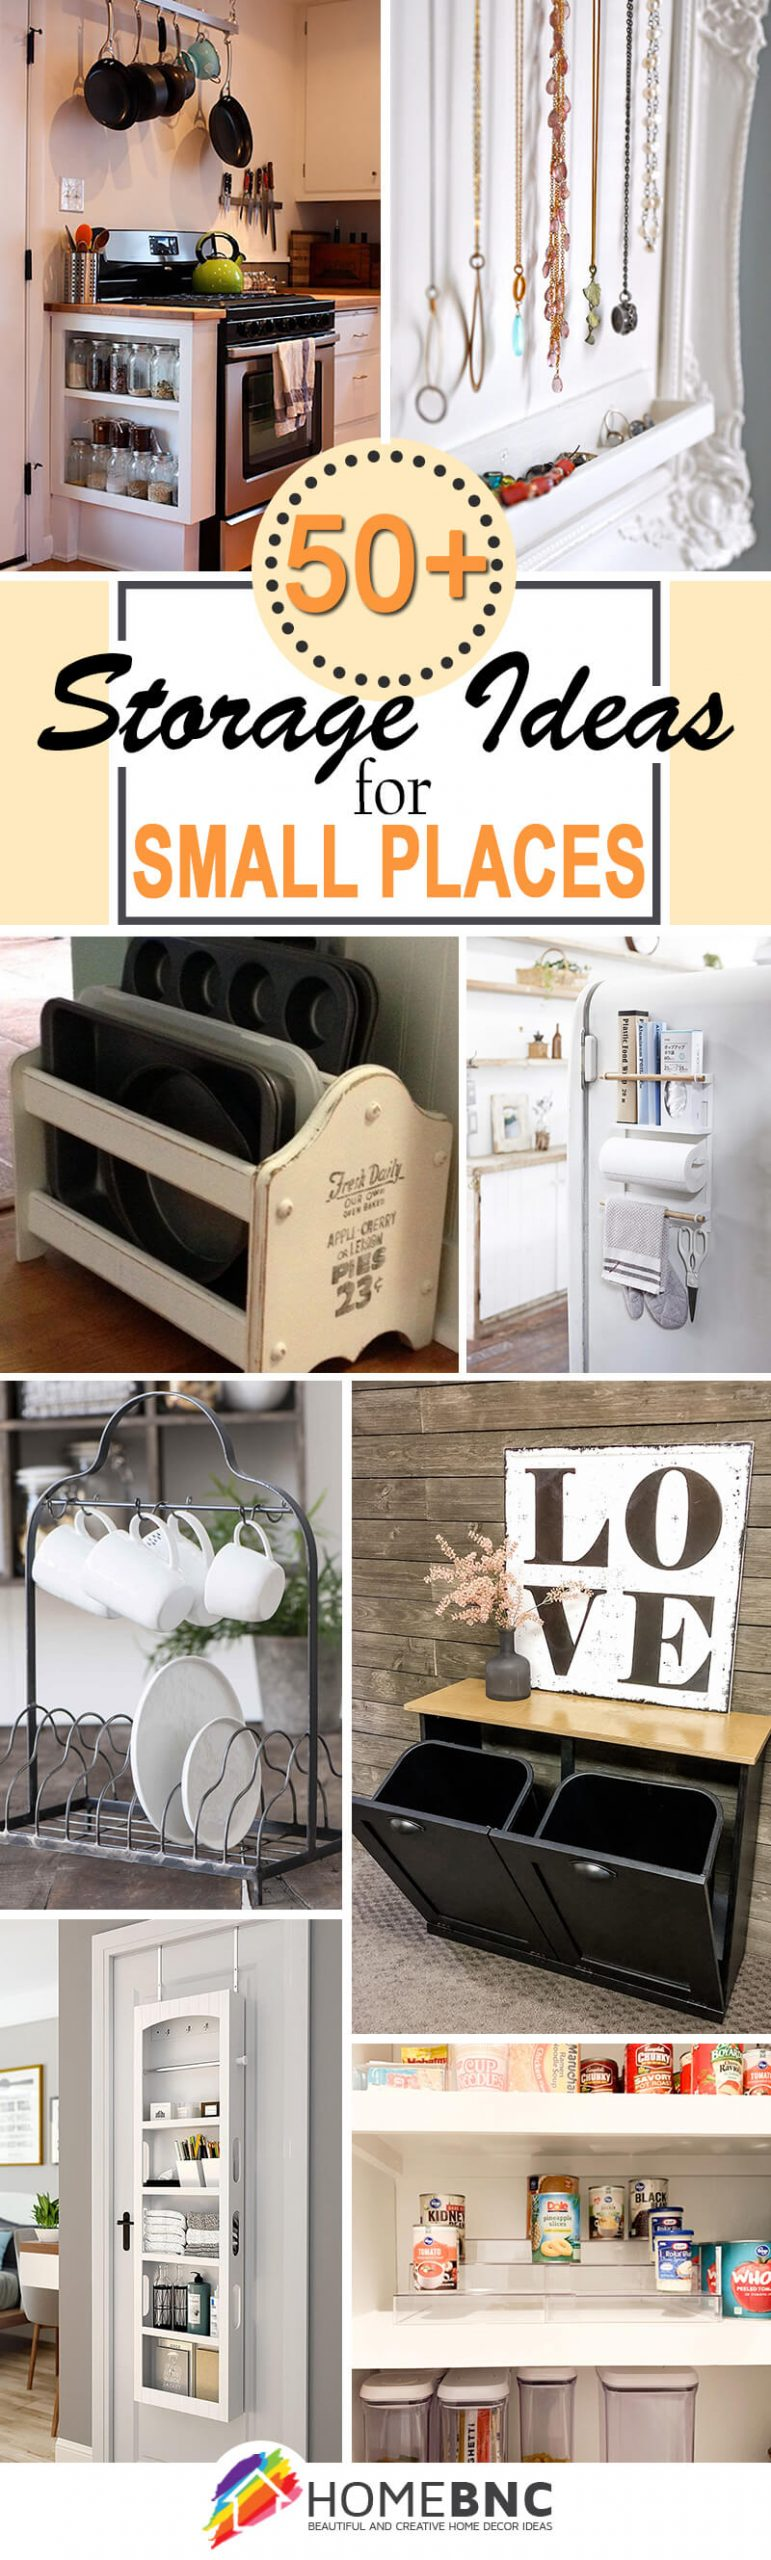 Storage Projects for Small Spaces